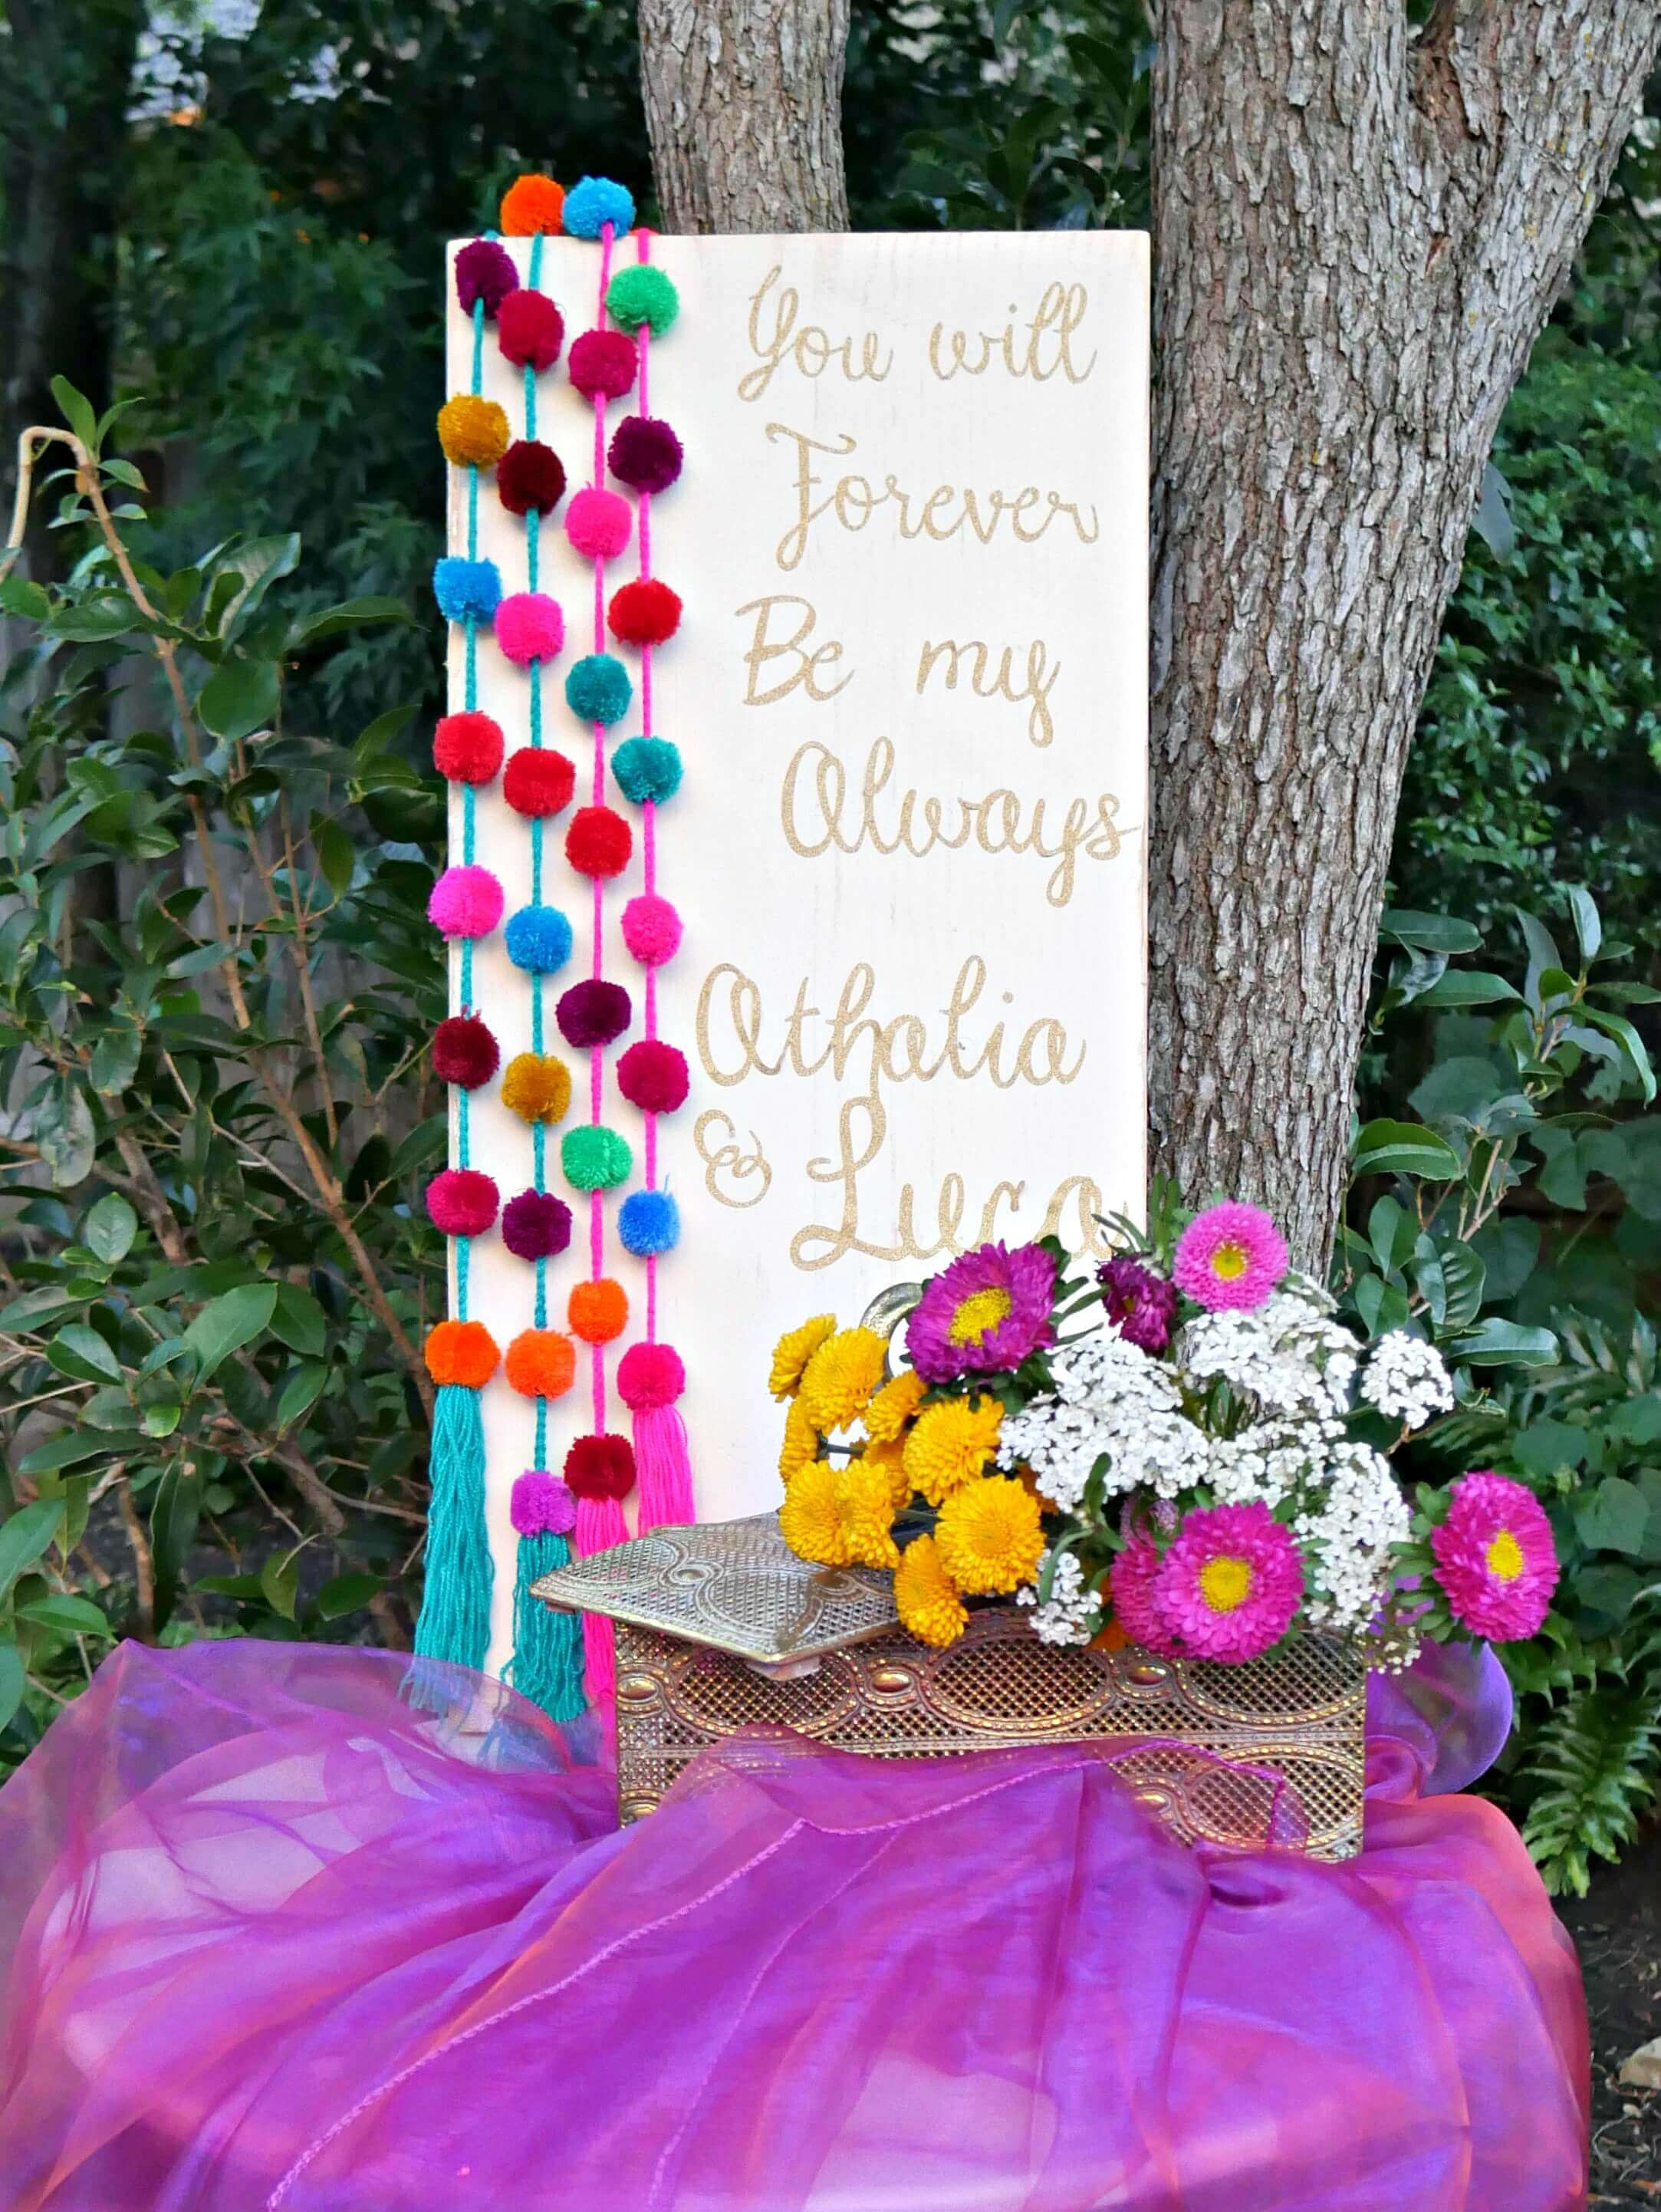 Having a welcome table to greet your guests is a great idea because it really sets the tone for the party and gets the guests excited to see what is coming next. This welcome sign was created for an engagement party and the couple can keep it for their home decor. Styled by Mint Event Design in Austin Texas www.minteventdesign.com #engagementideas #welcometable #welcomesign #bohochic